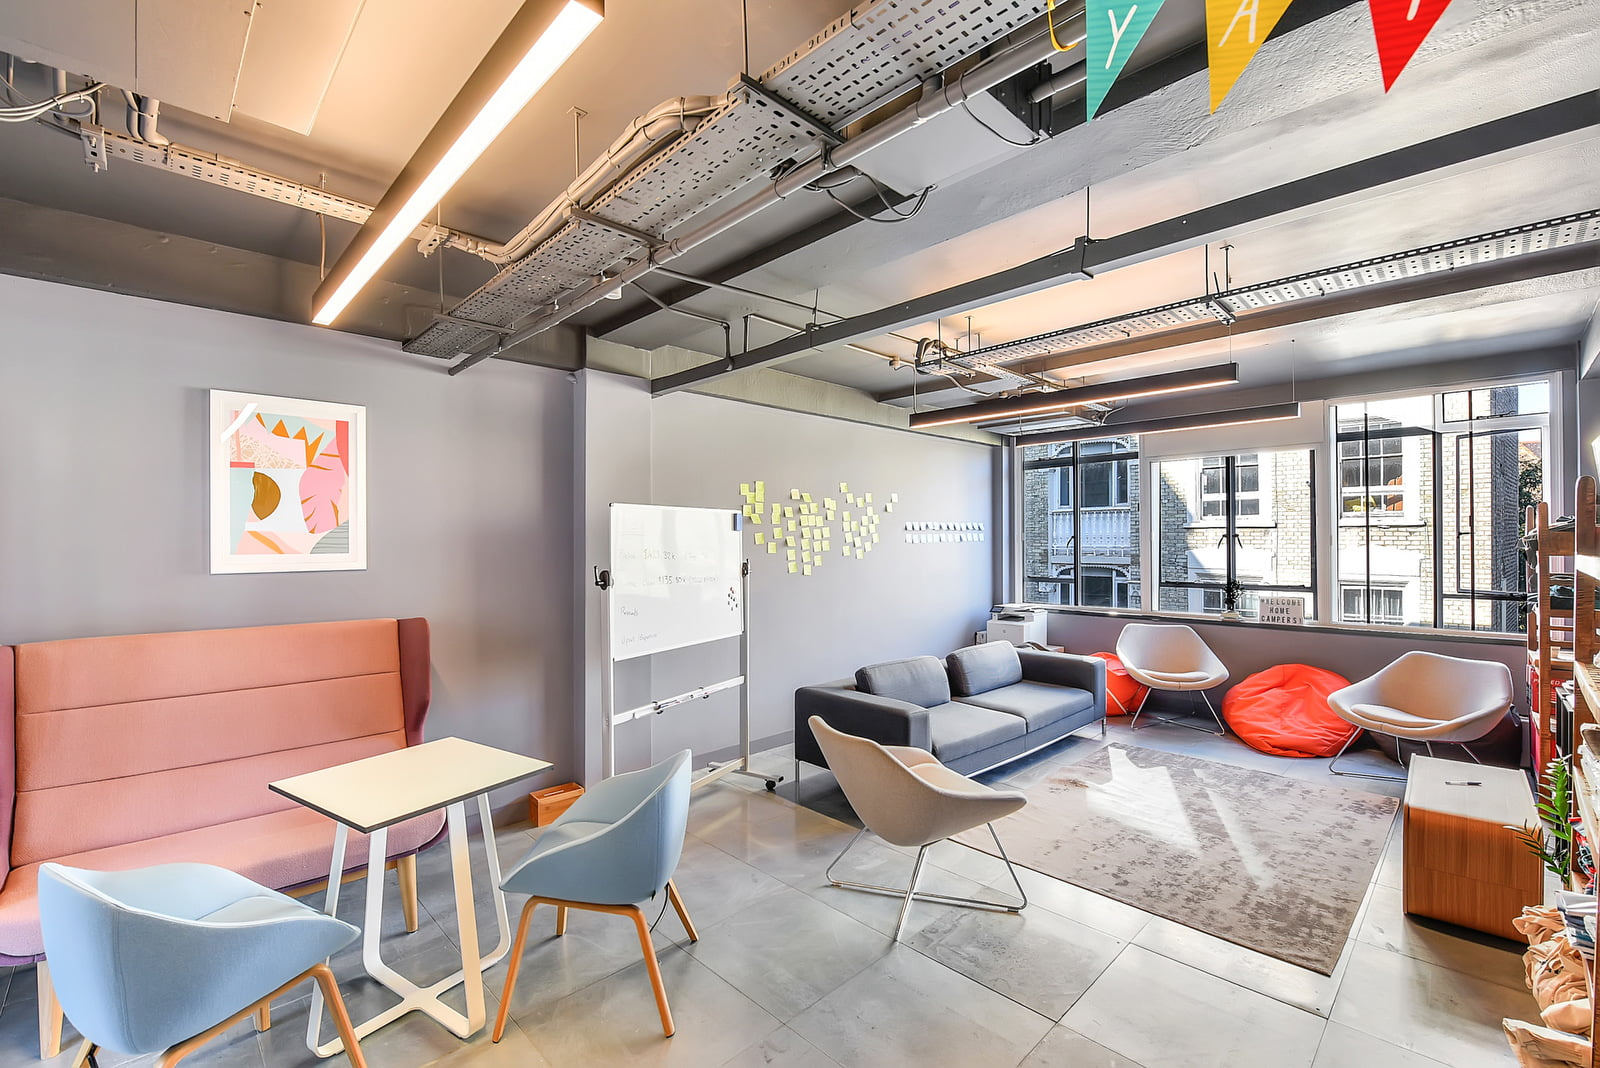 Tech startup office spaces London - collaborative spaces